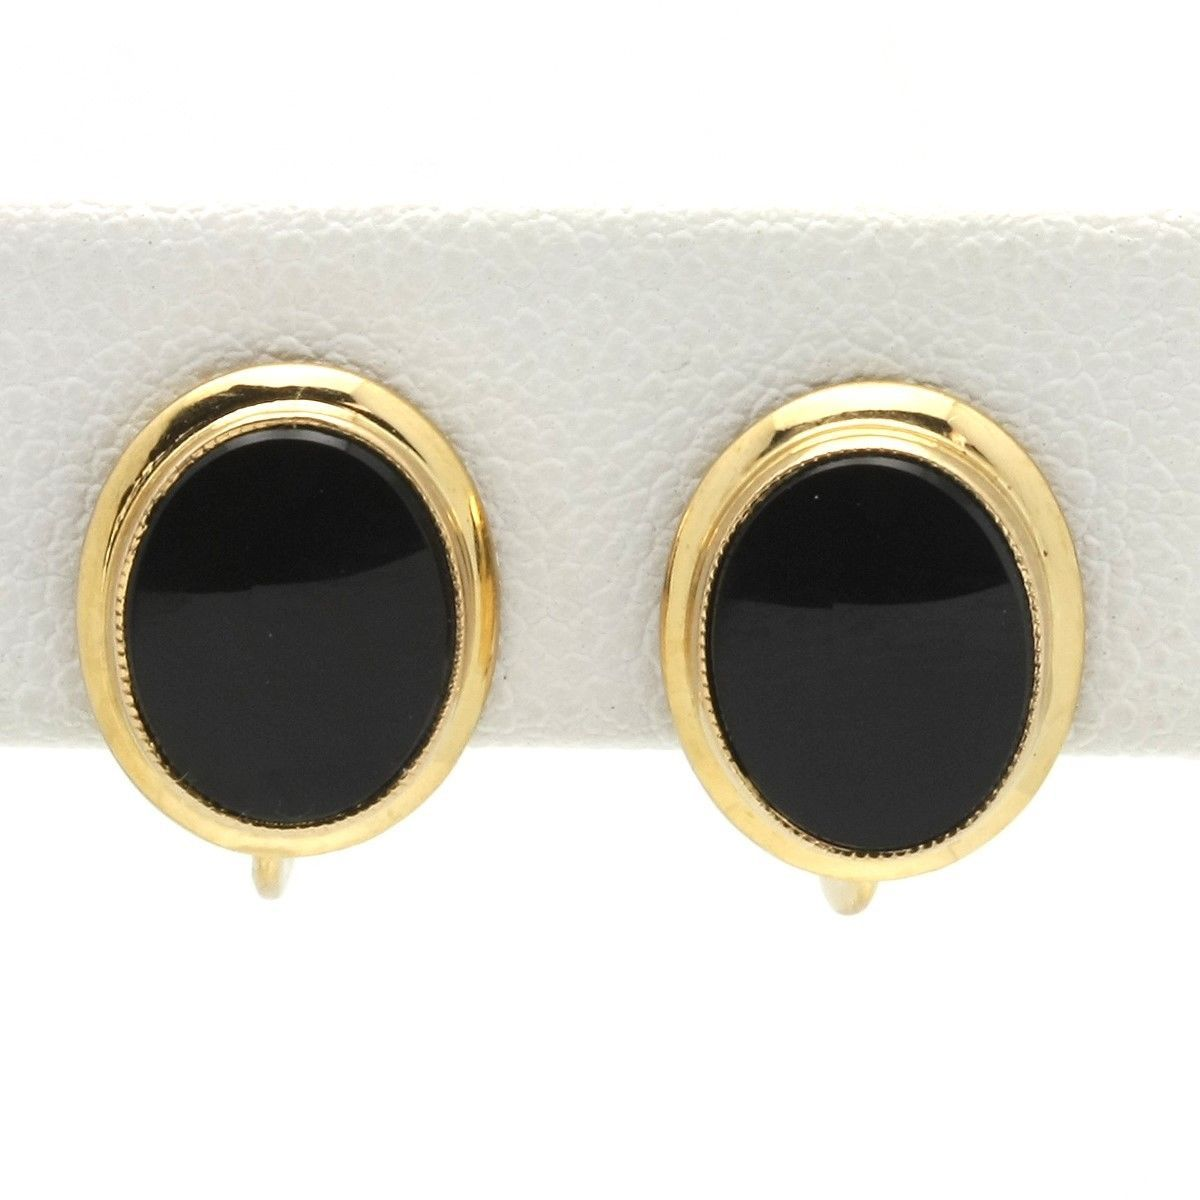 Vintage 10K Gold Black Onyx Screwback Earrings Budlong Docherty & Armstrong